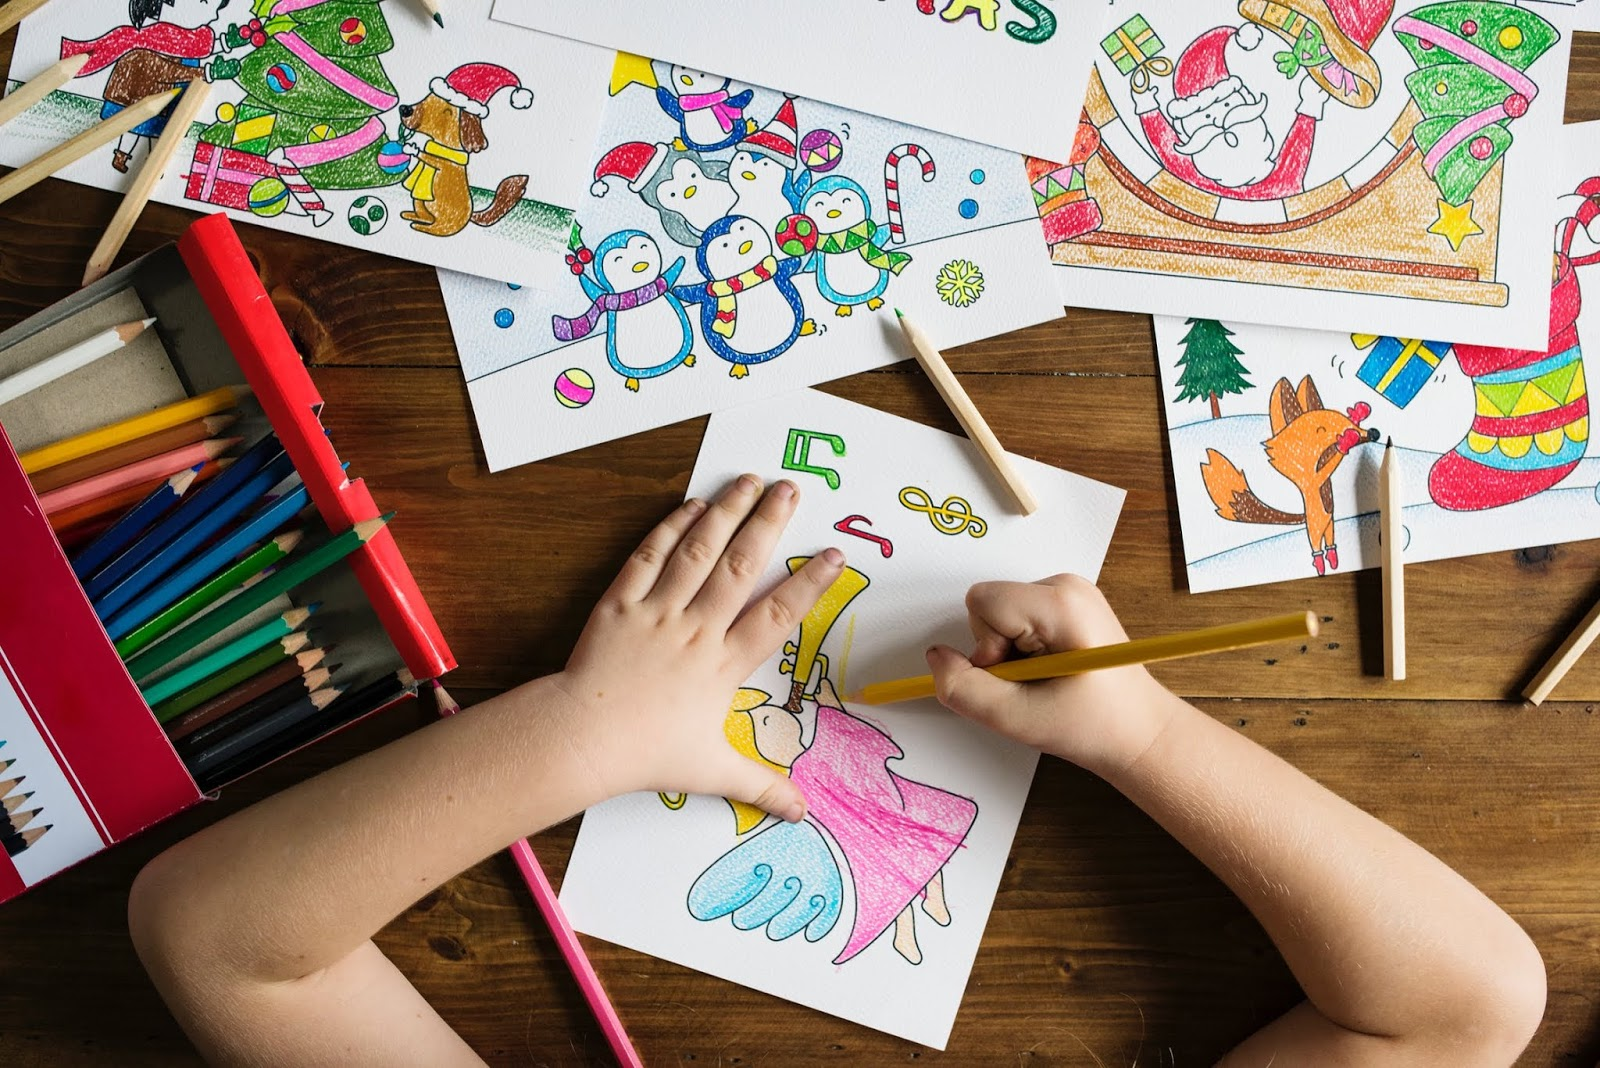 Kids to Spend TIME on Art and Craft